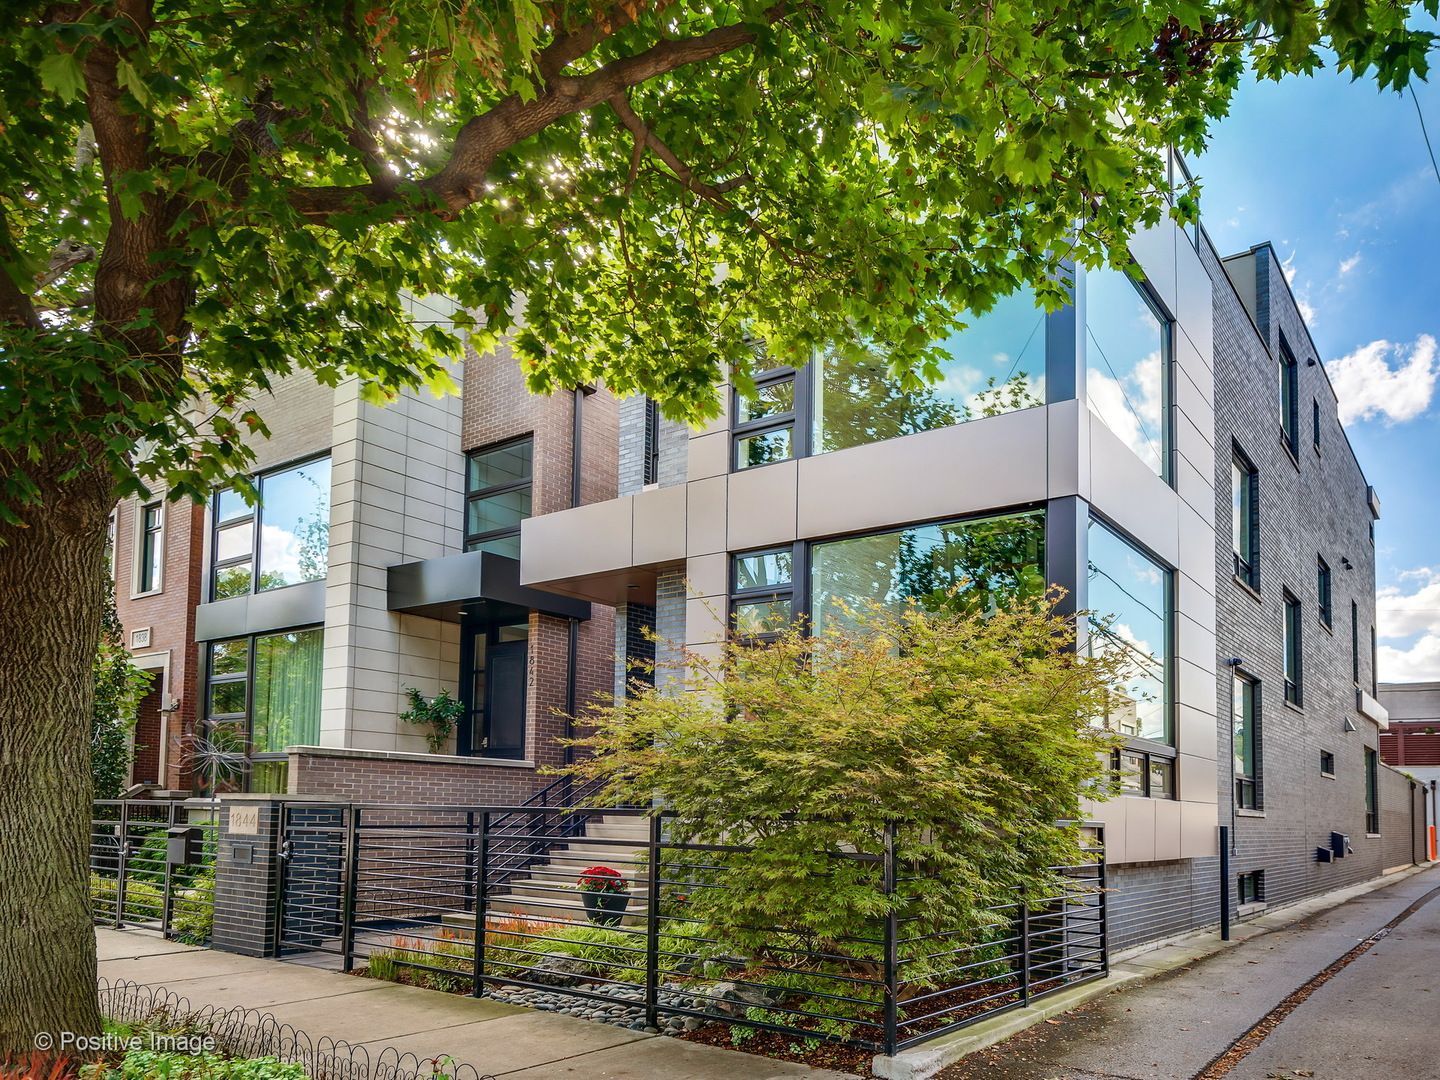 5 House in Logan Square